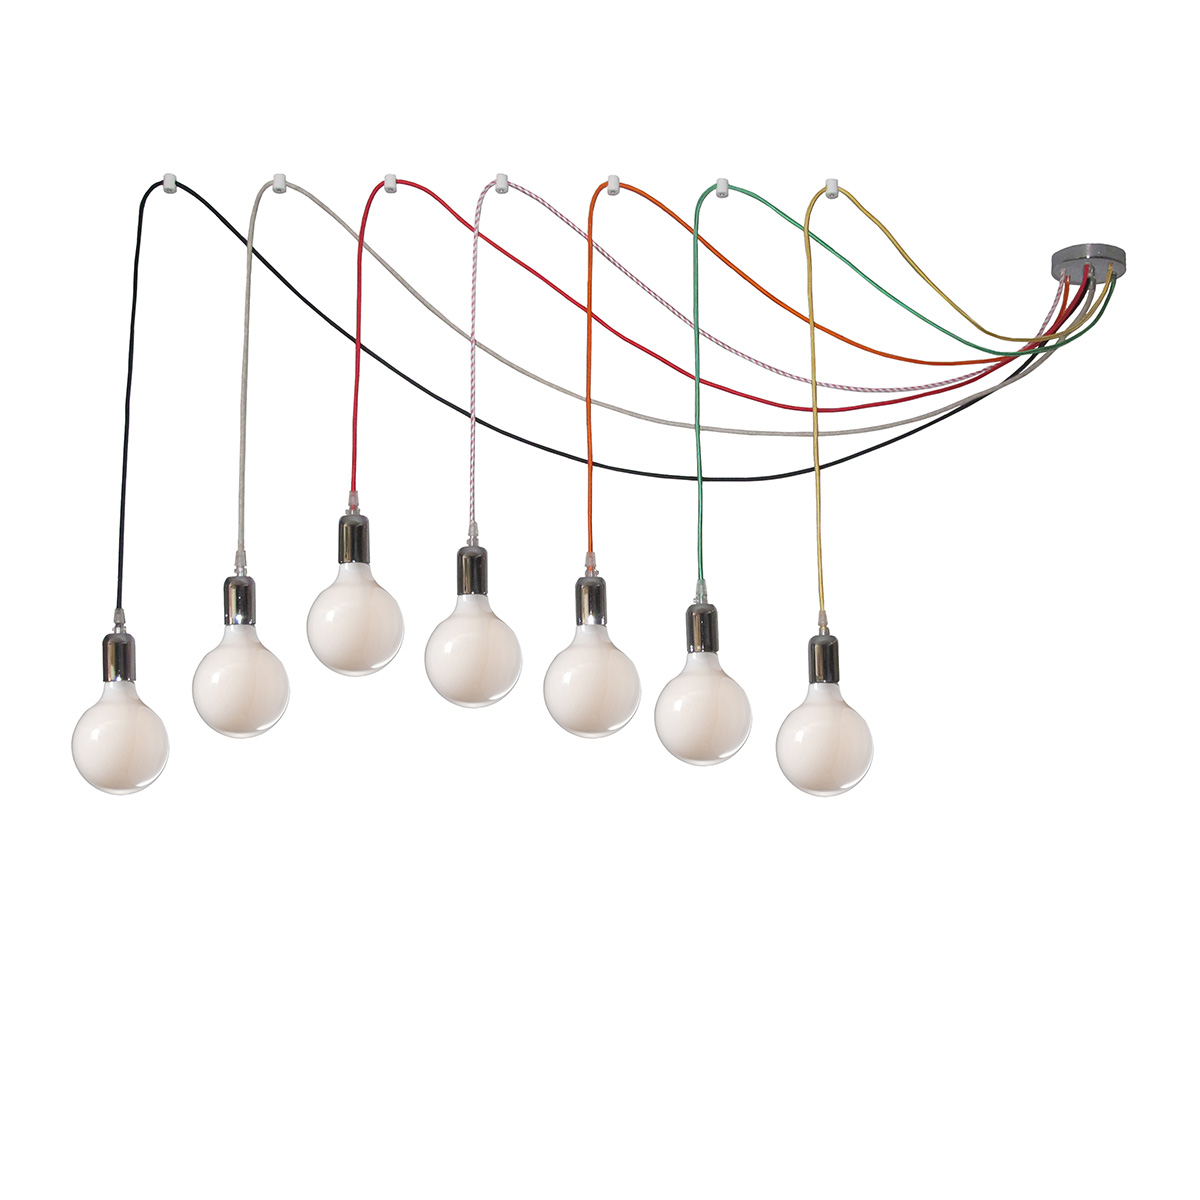 7 Bulb Chandelier With Colorful Cables Mavros Lighting Parts Diagram Cables5029s